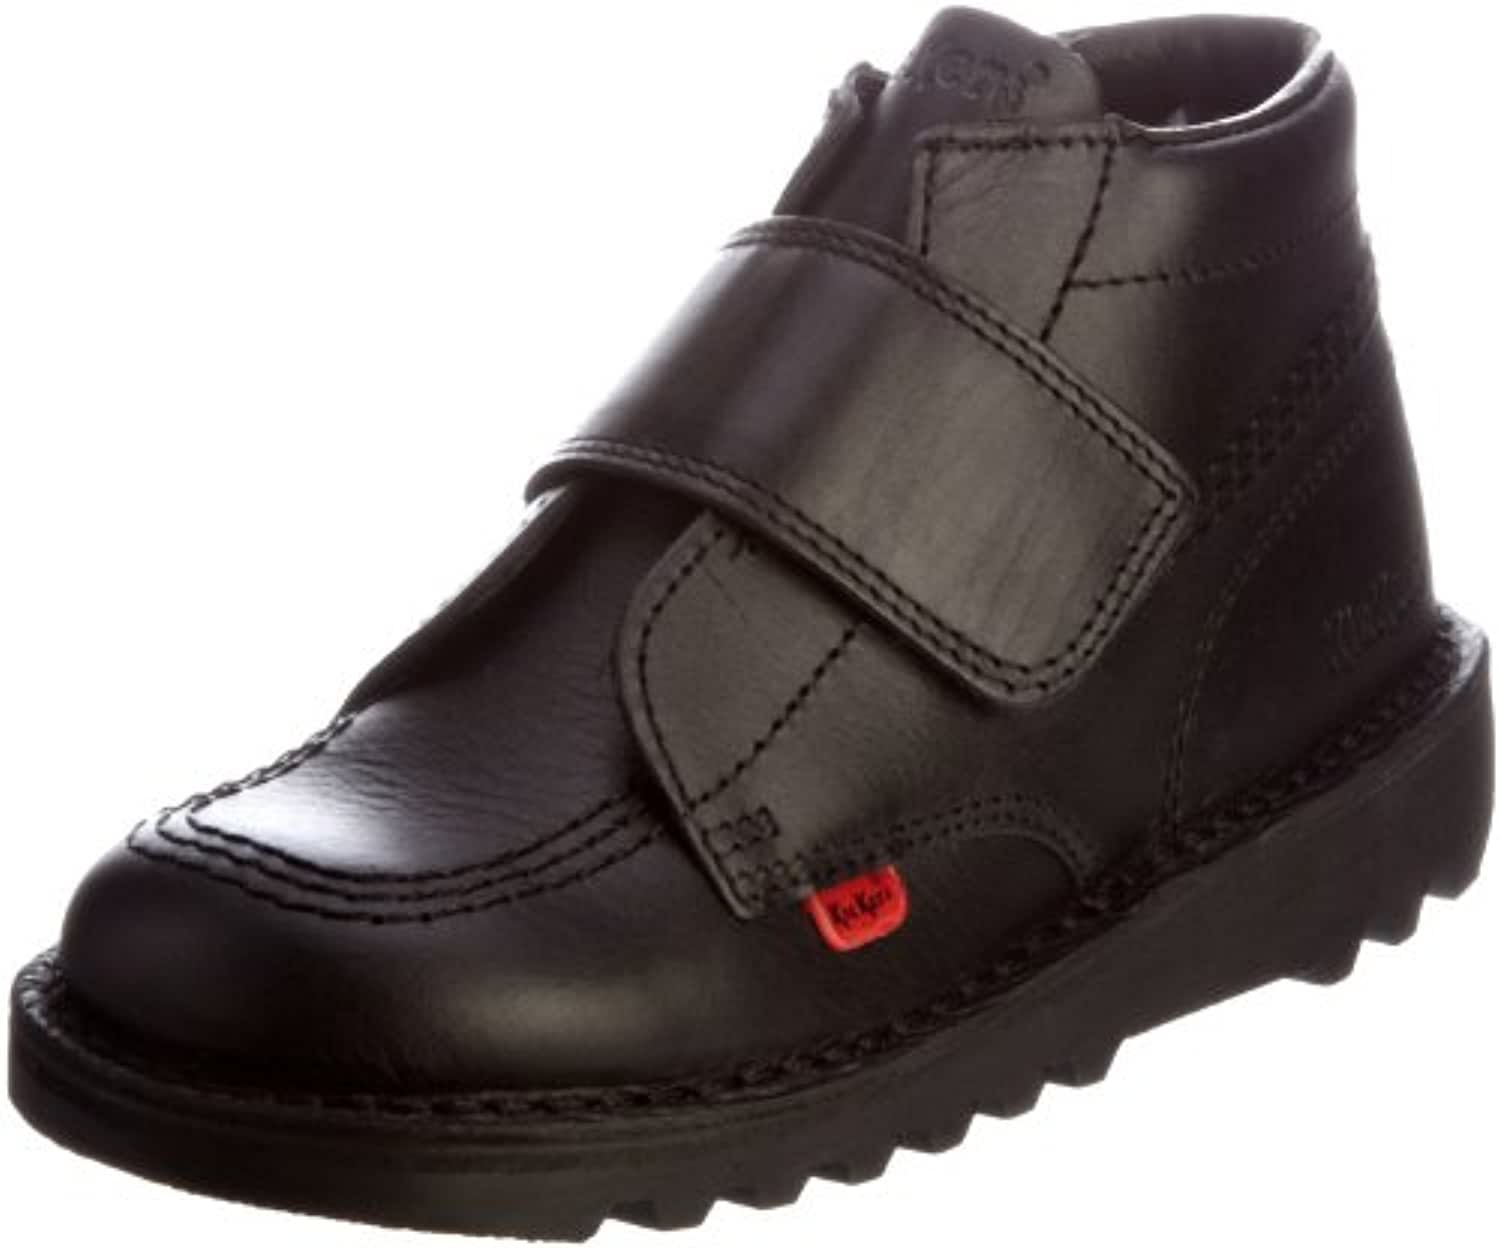 Kickers Kick Kilo Strap Boys' Shoes - Black, 5 UK Child